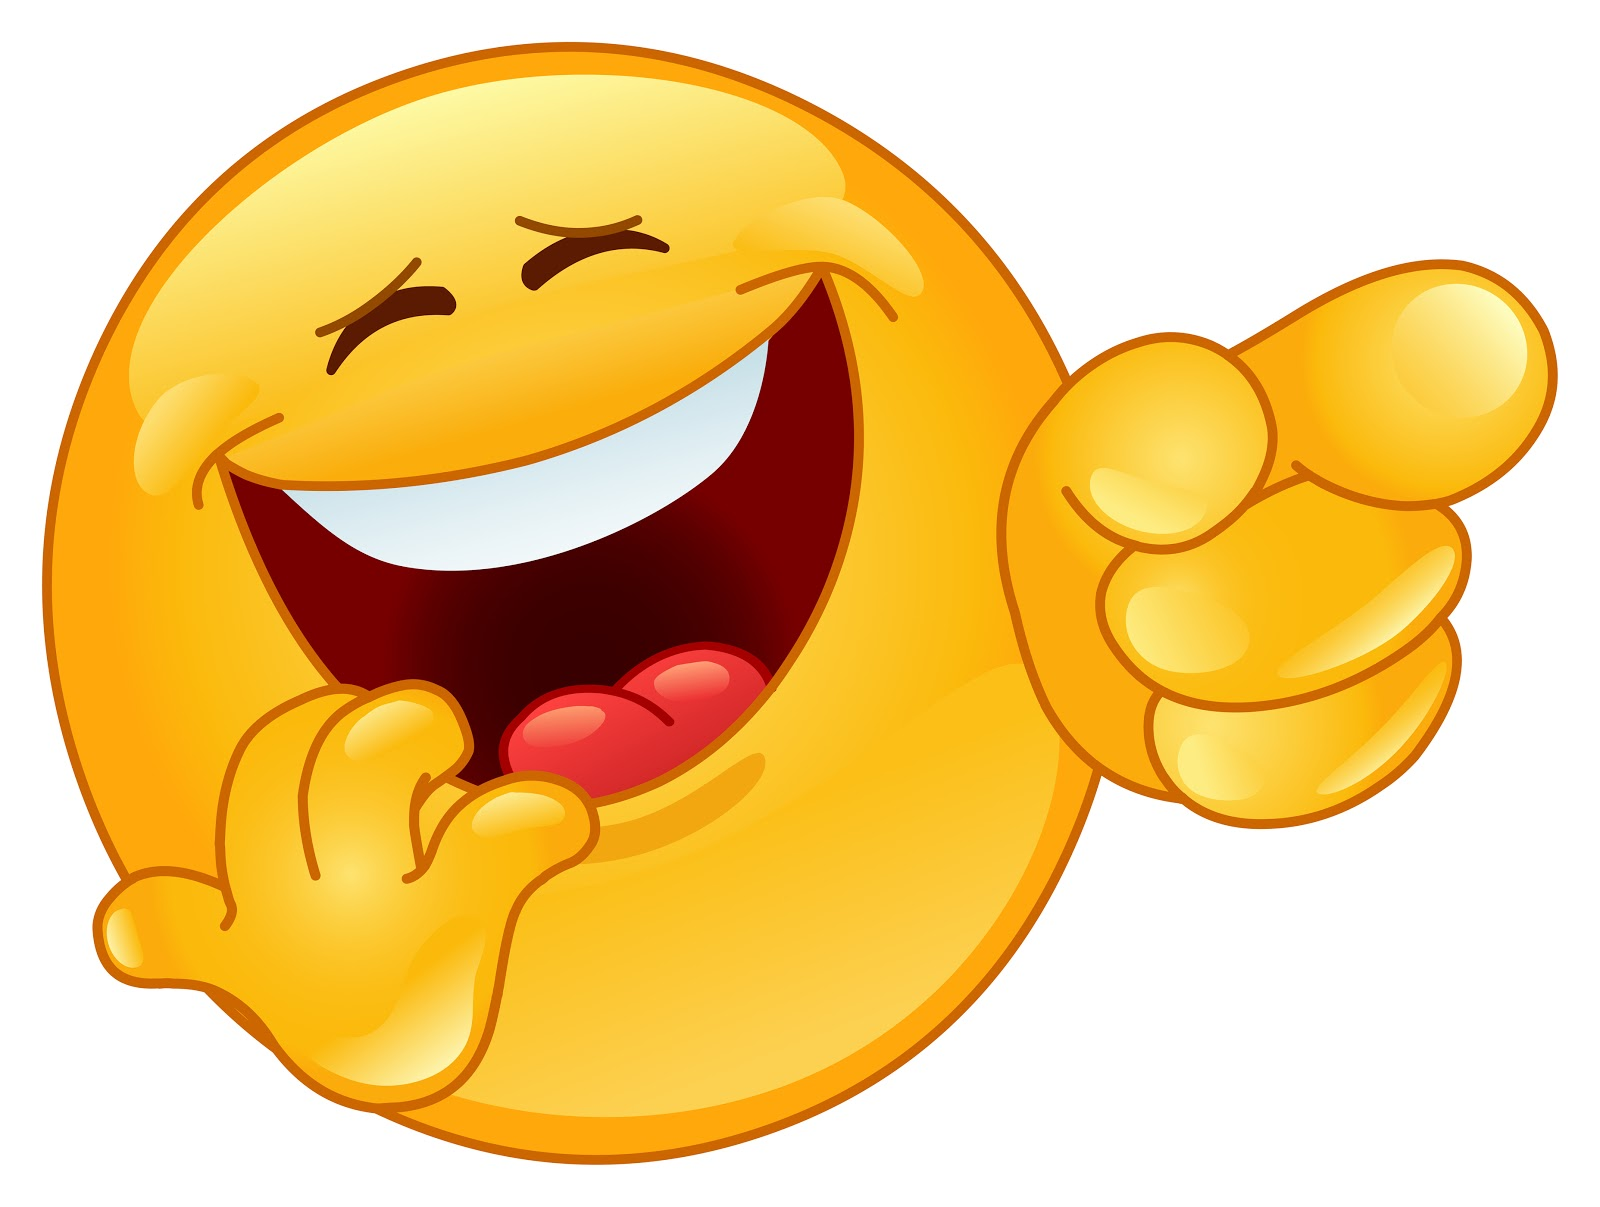 Laughing Face Clip Art Cliparts Co-Laughing Face Clip Art Cliparts Co-12